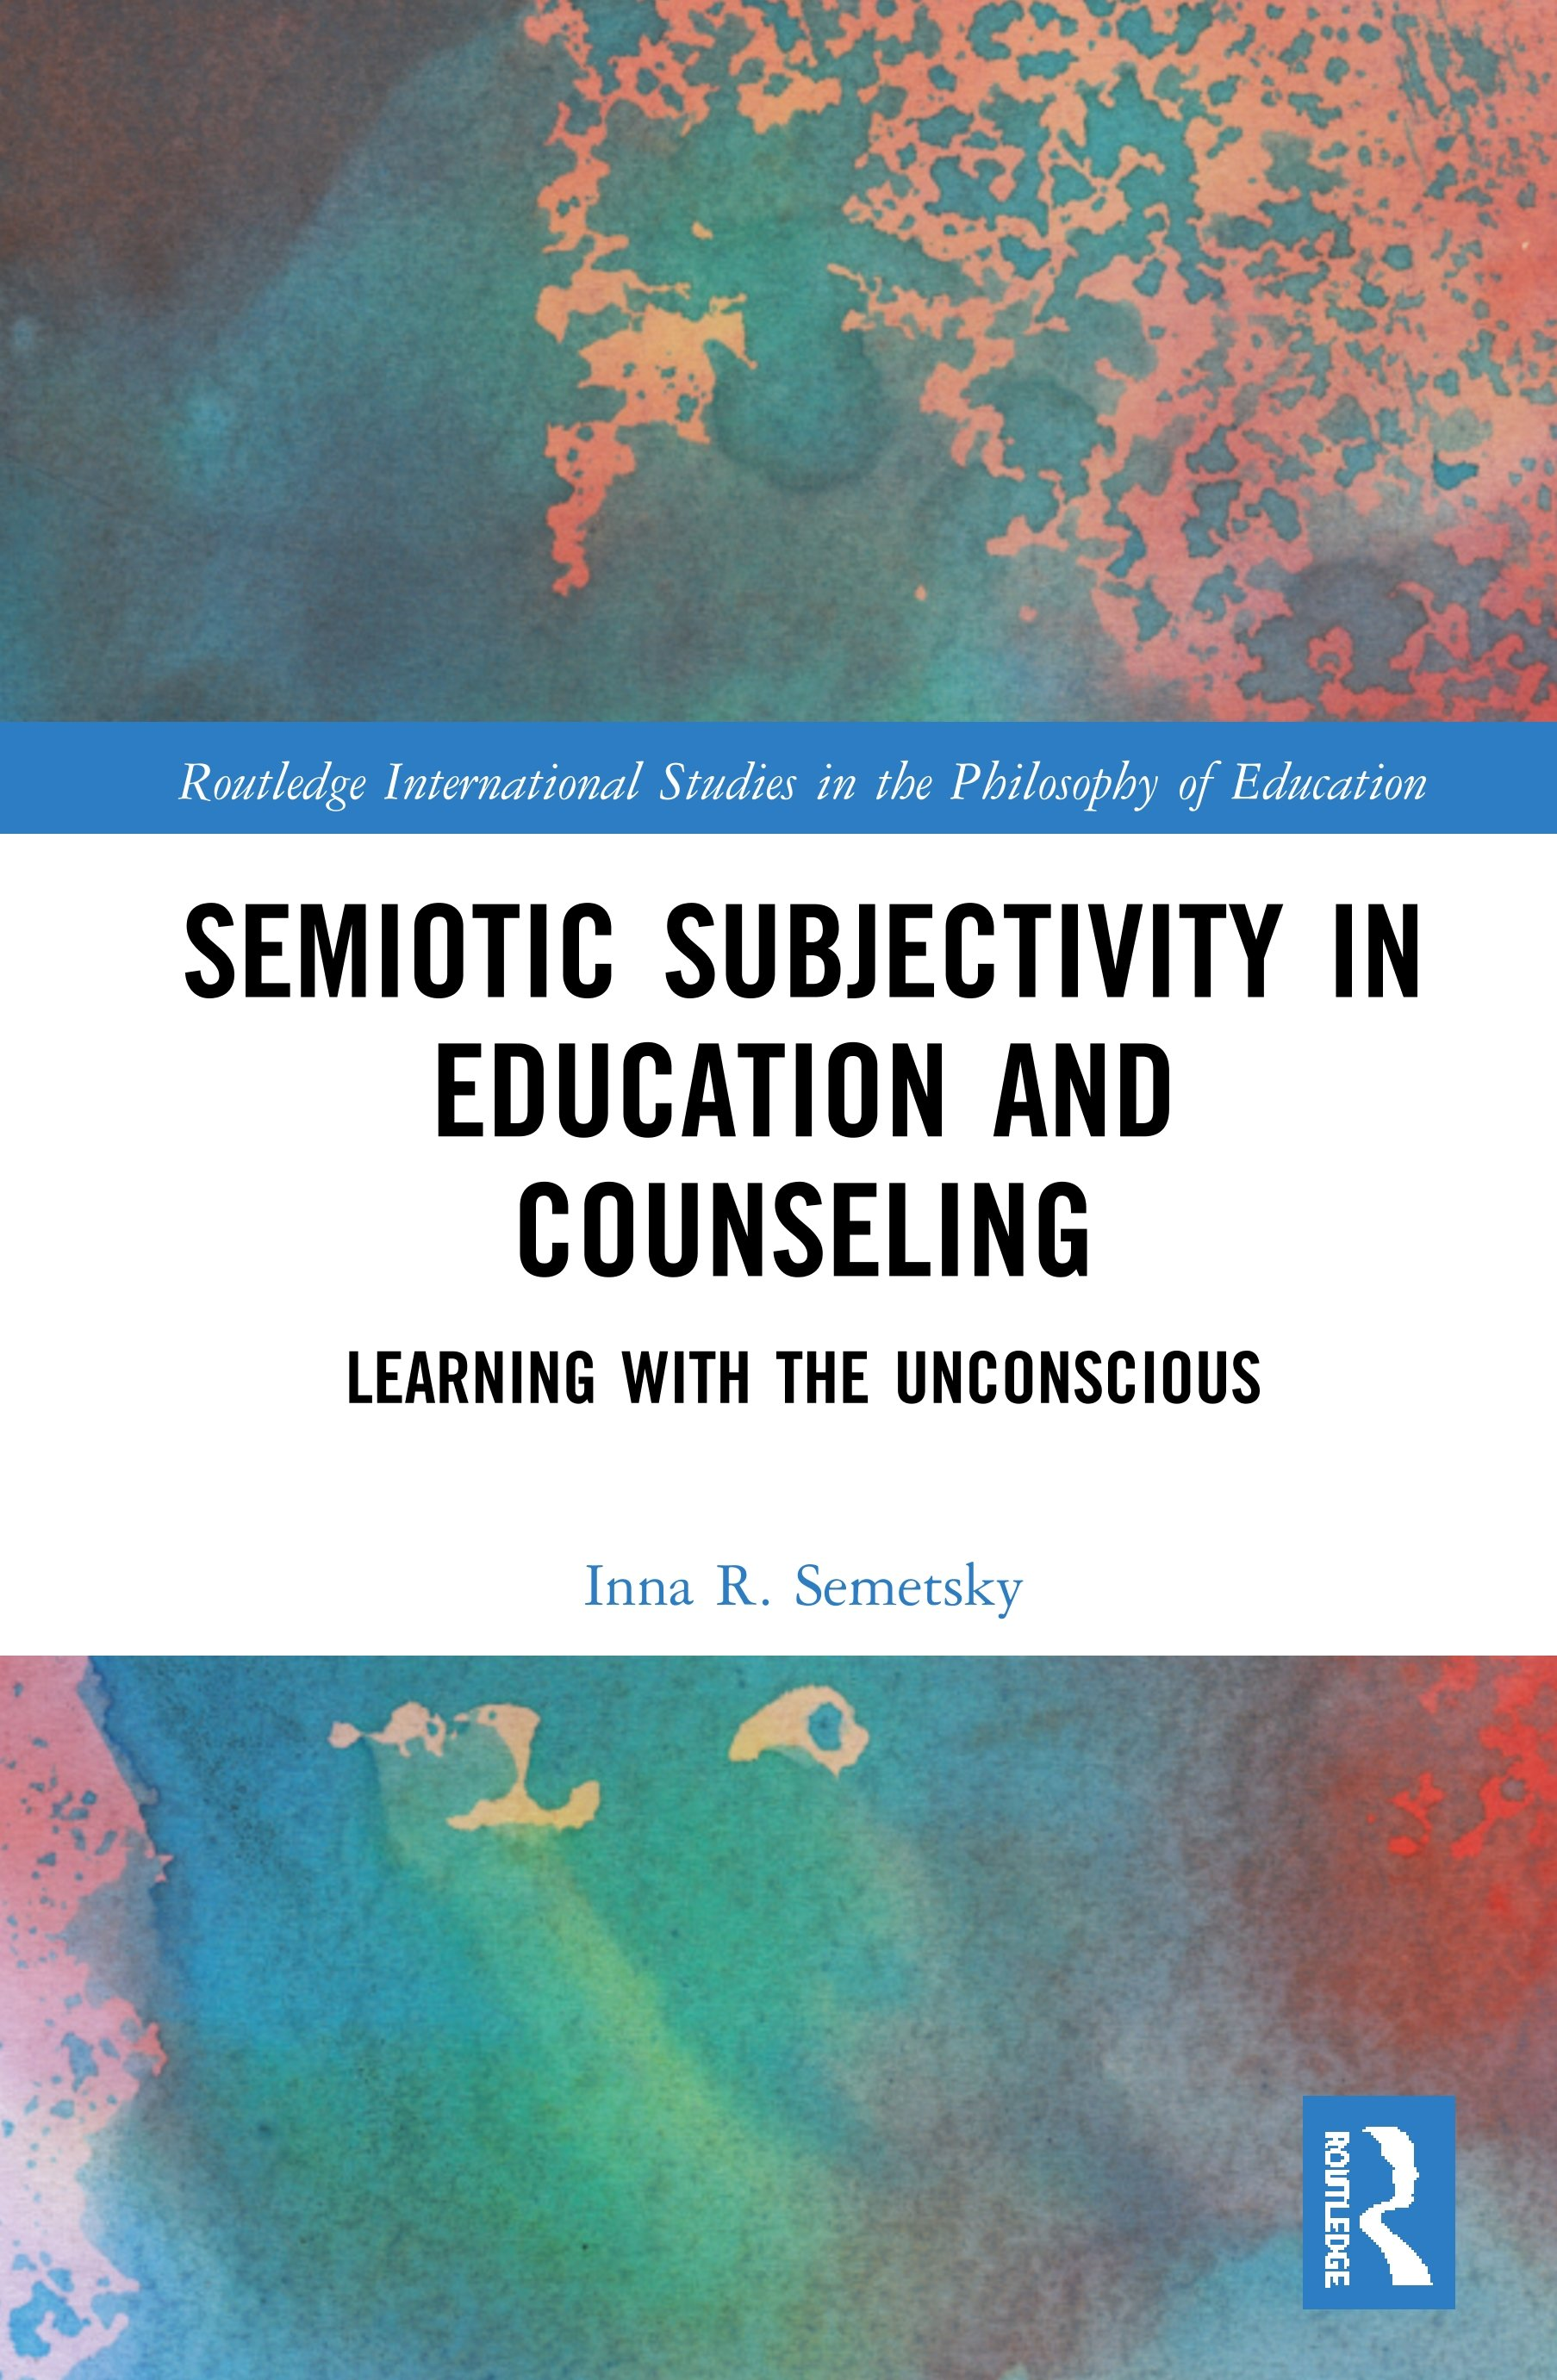 Semiotic Subjectivity in Education and Counseling: Learning with the Unconscious book cover